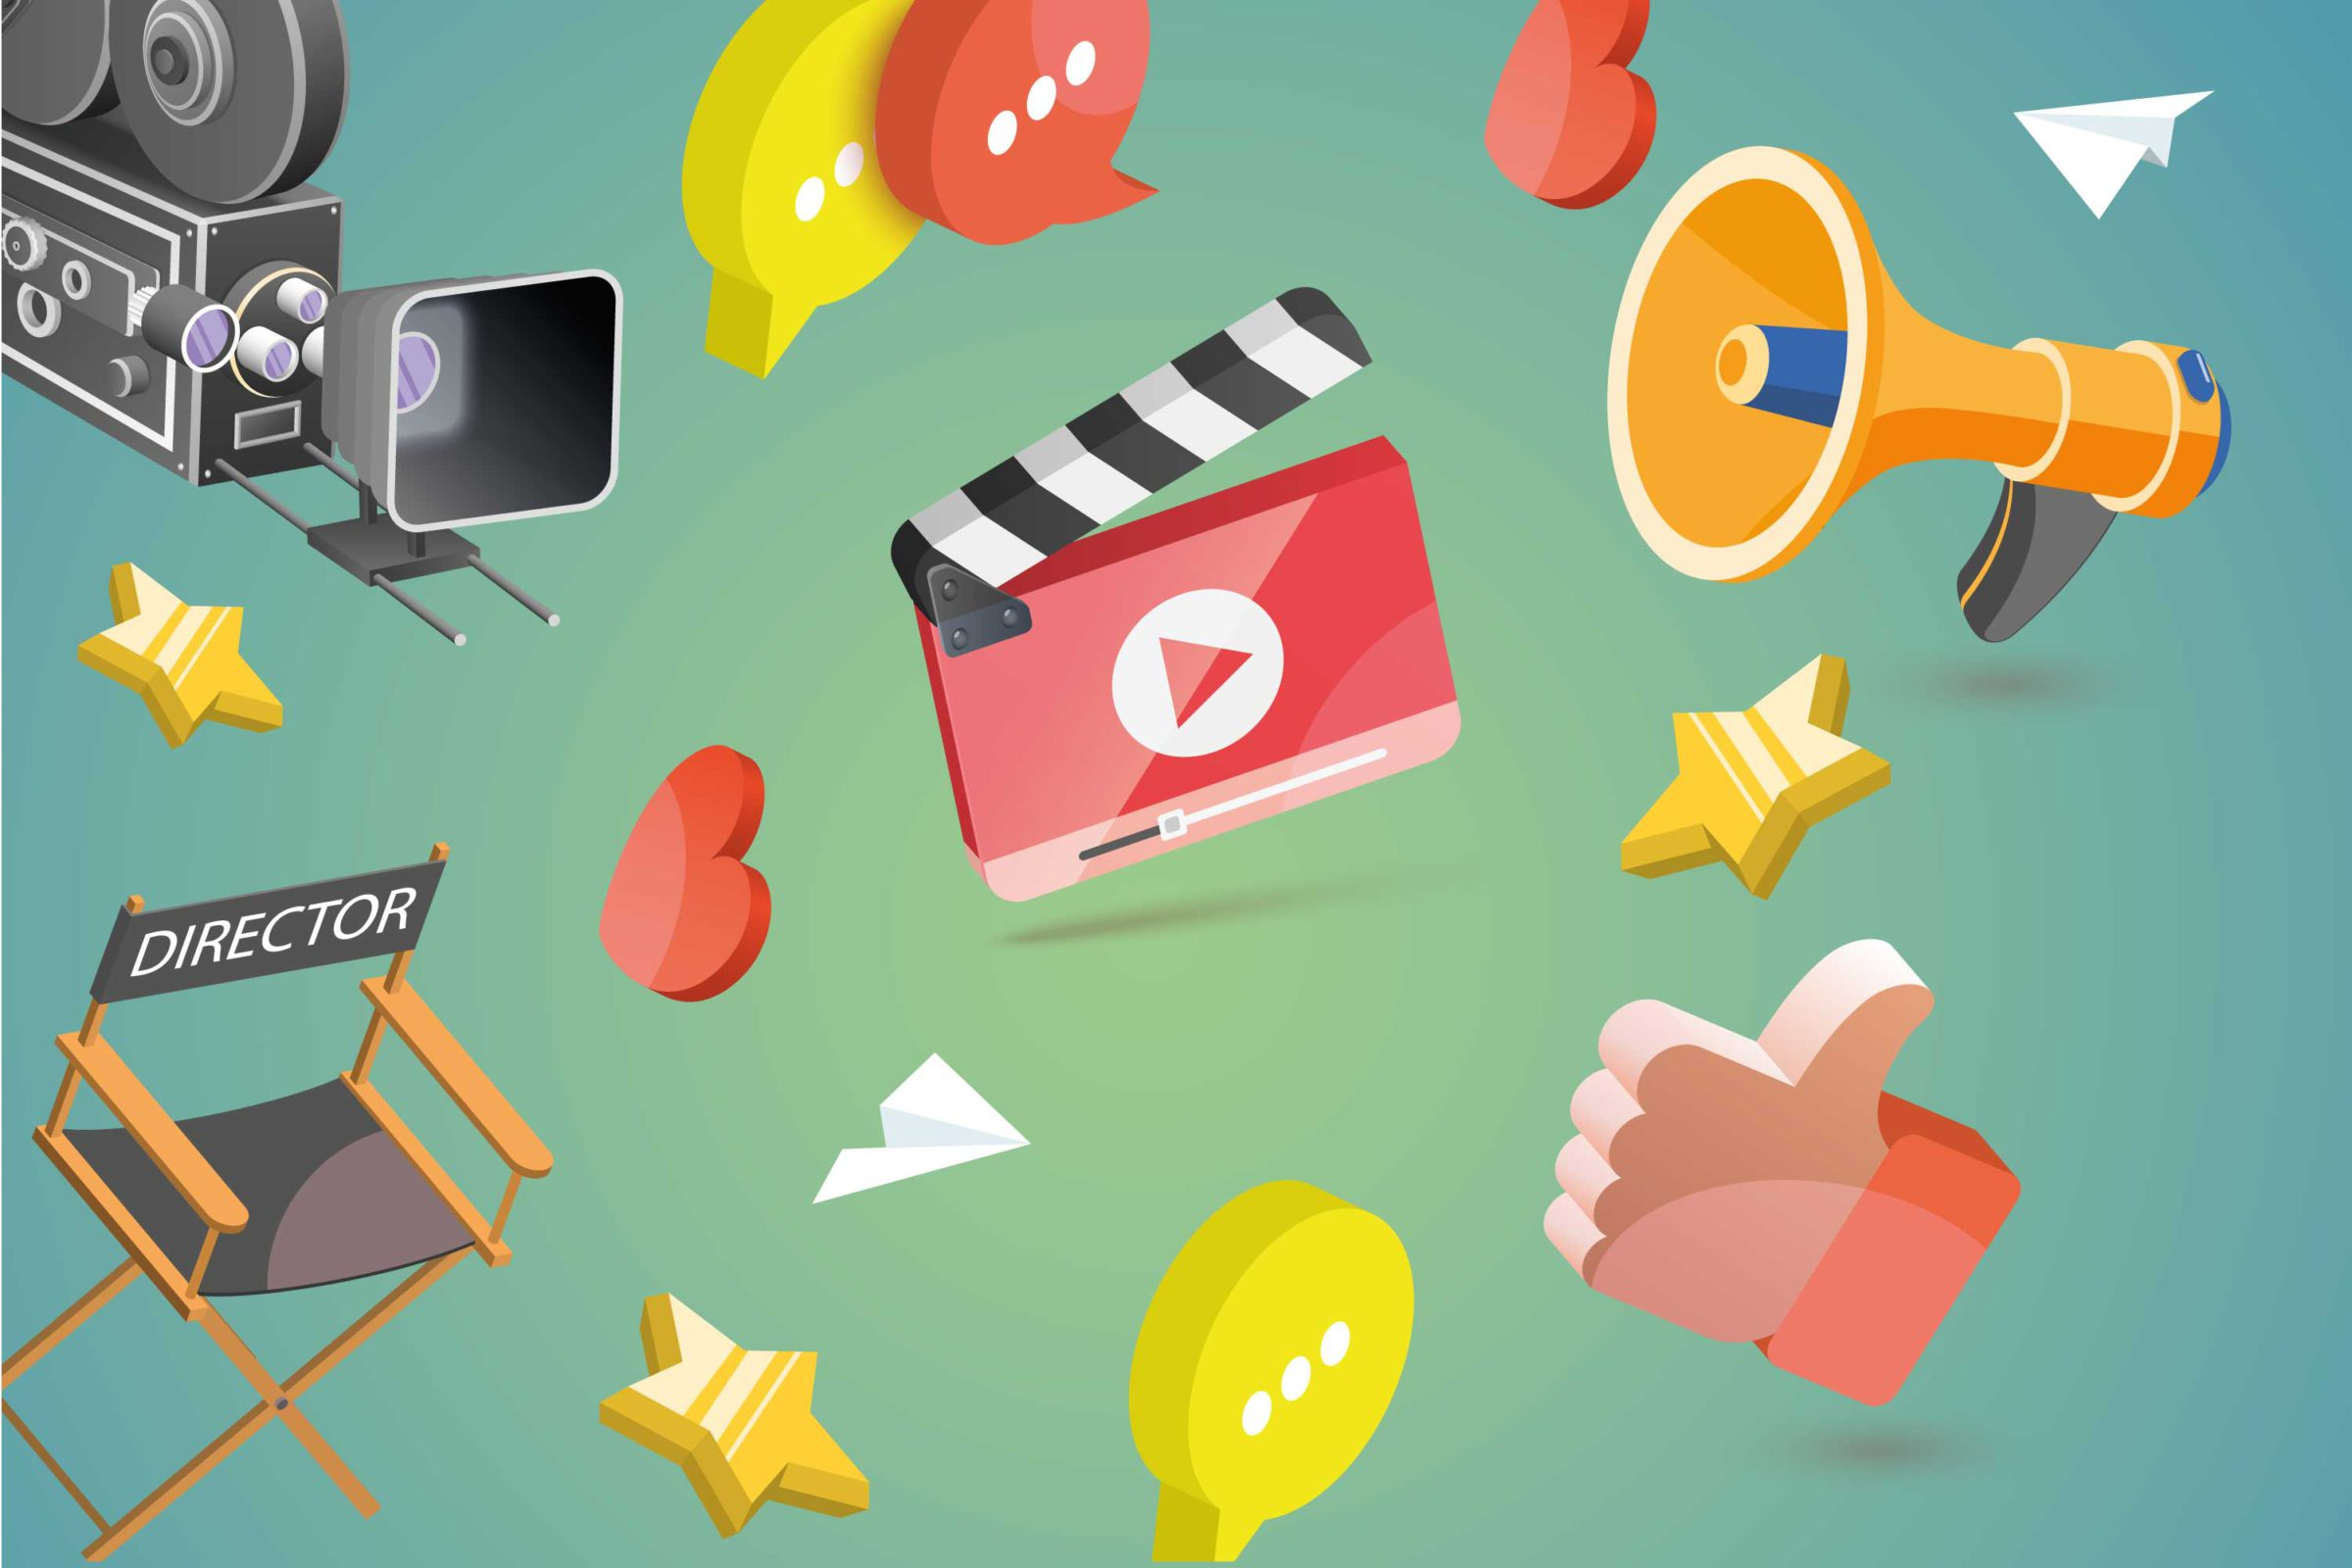 Explainer video costs (and how to make one) the complete guide 2021